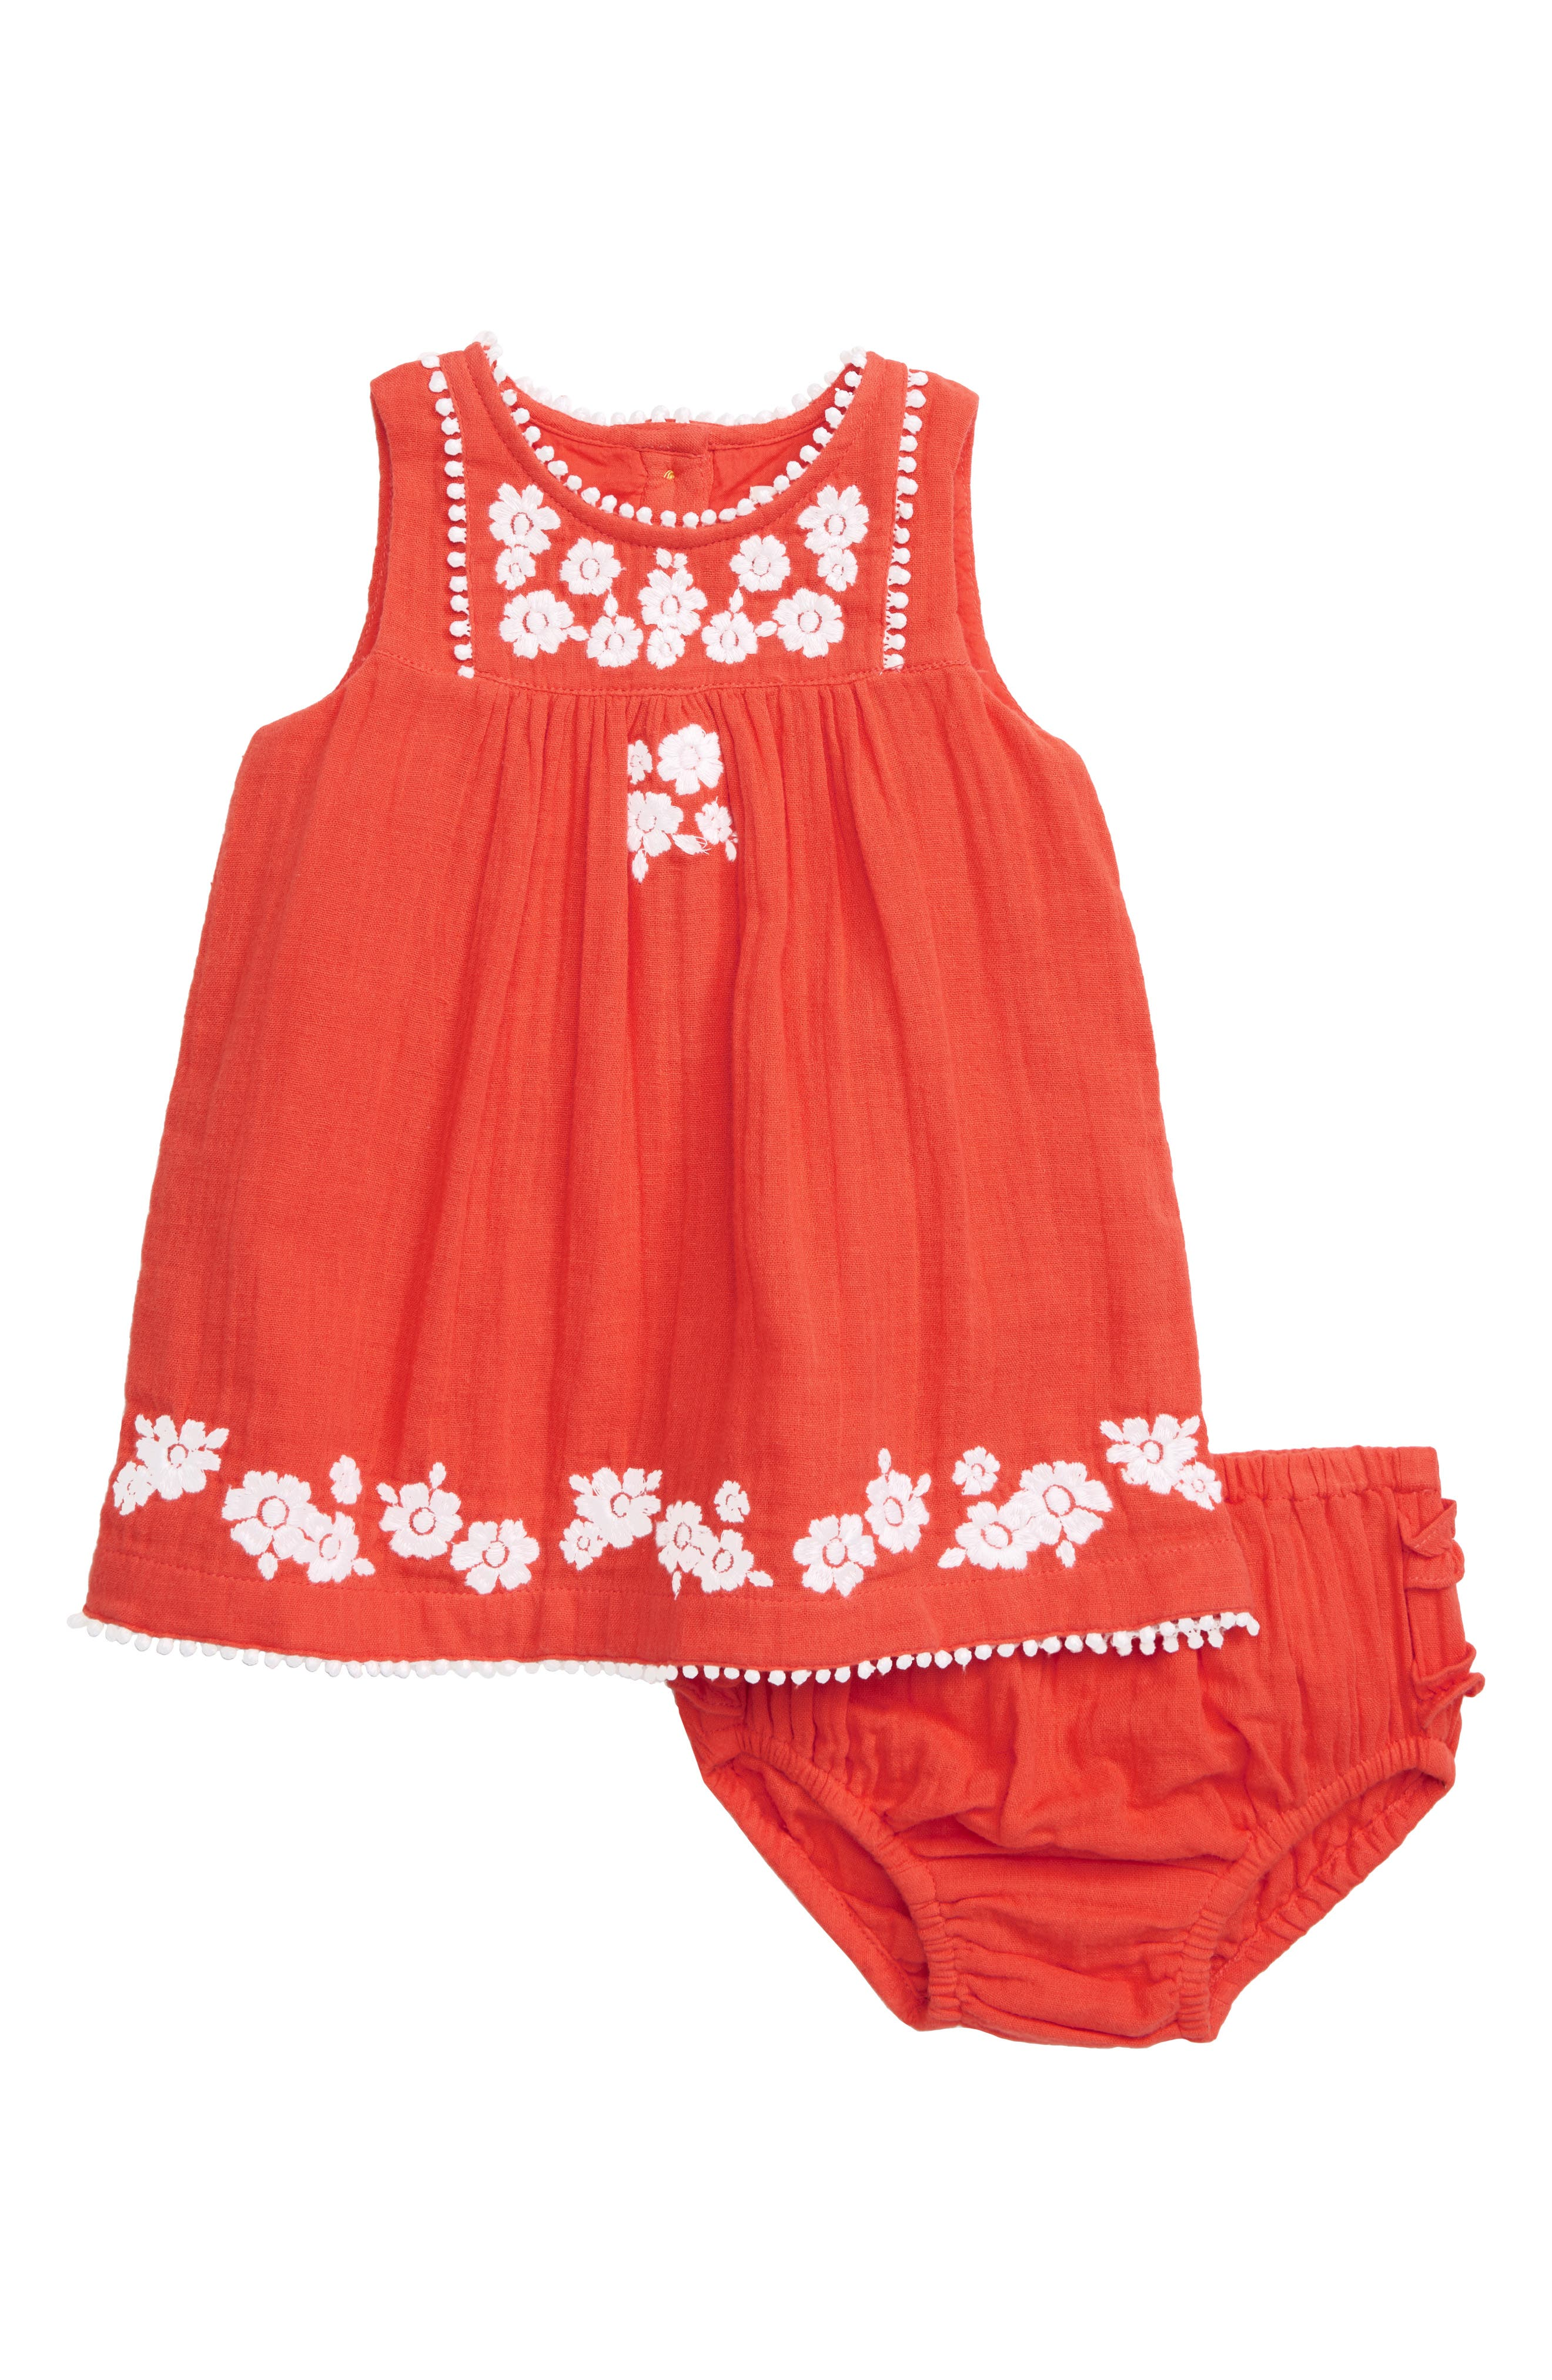 5217affac133 Infant Girl's Mini Boden Pretty Embroidered Dress, Coral